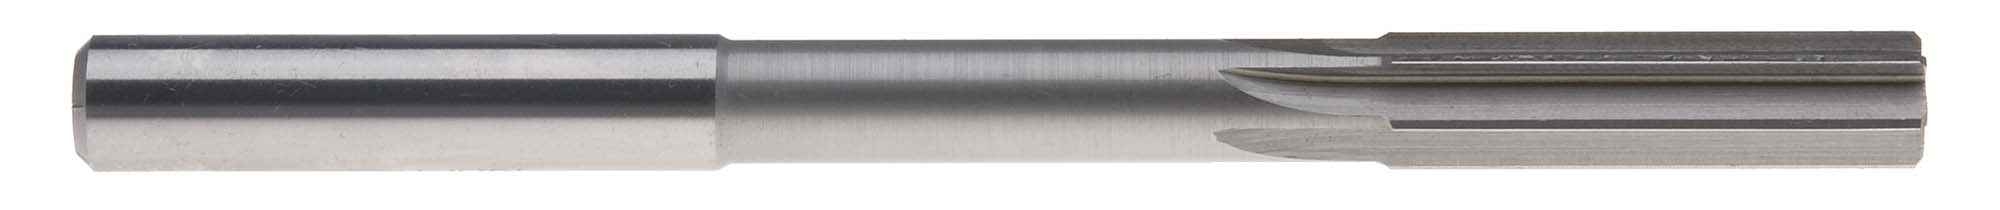 9.5mm Metric Chucking Reamer, High Speed Steel